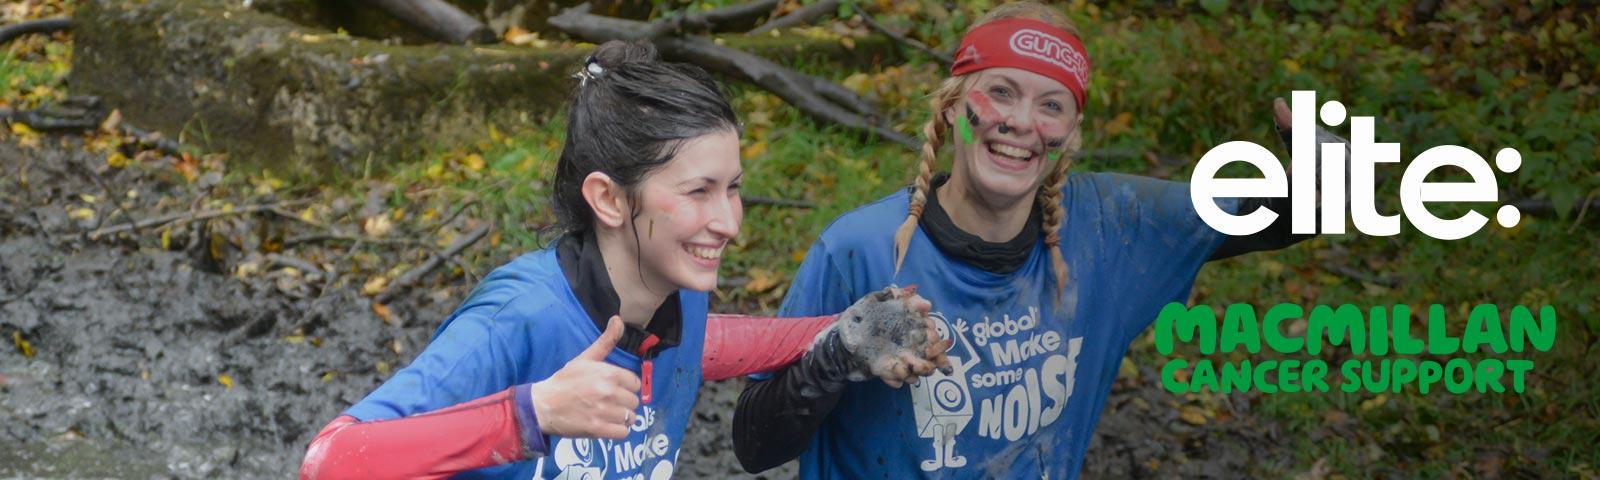 Two ladies are battling through the mud.  On the right are logos for Stampede sponsors elite: and Macmillan Cancer Support